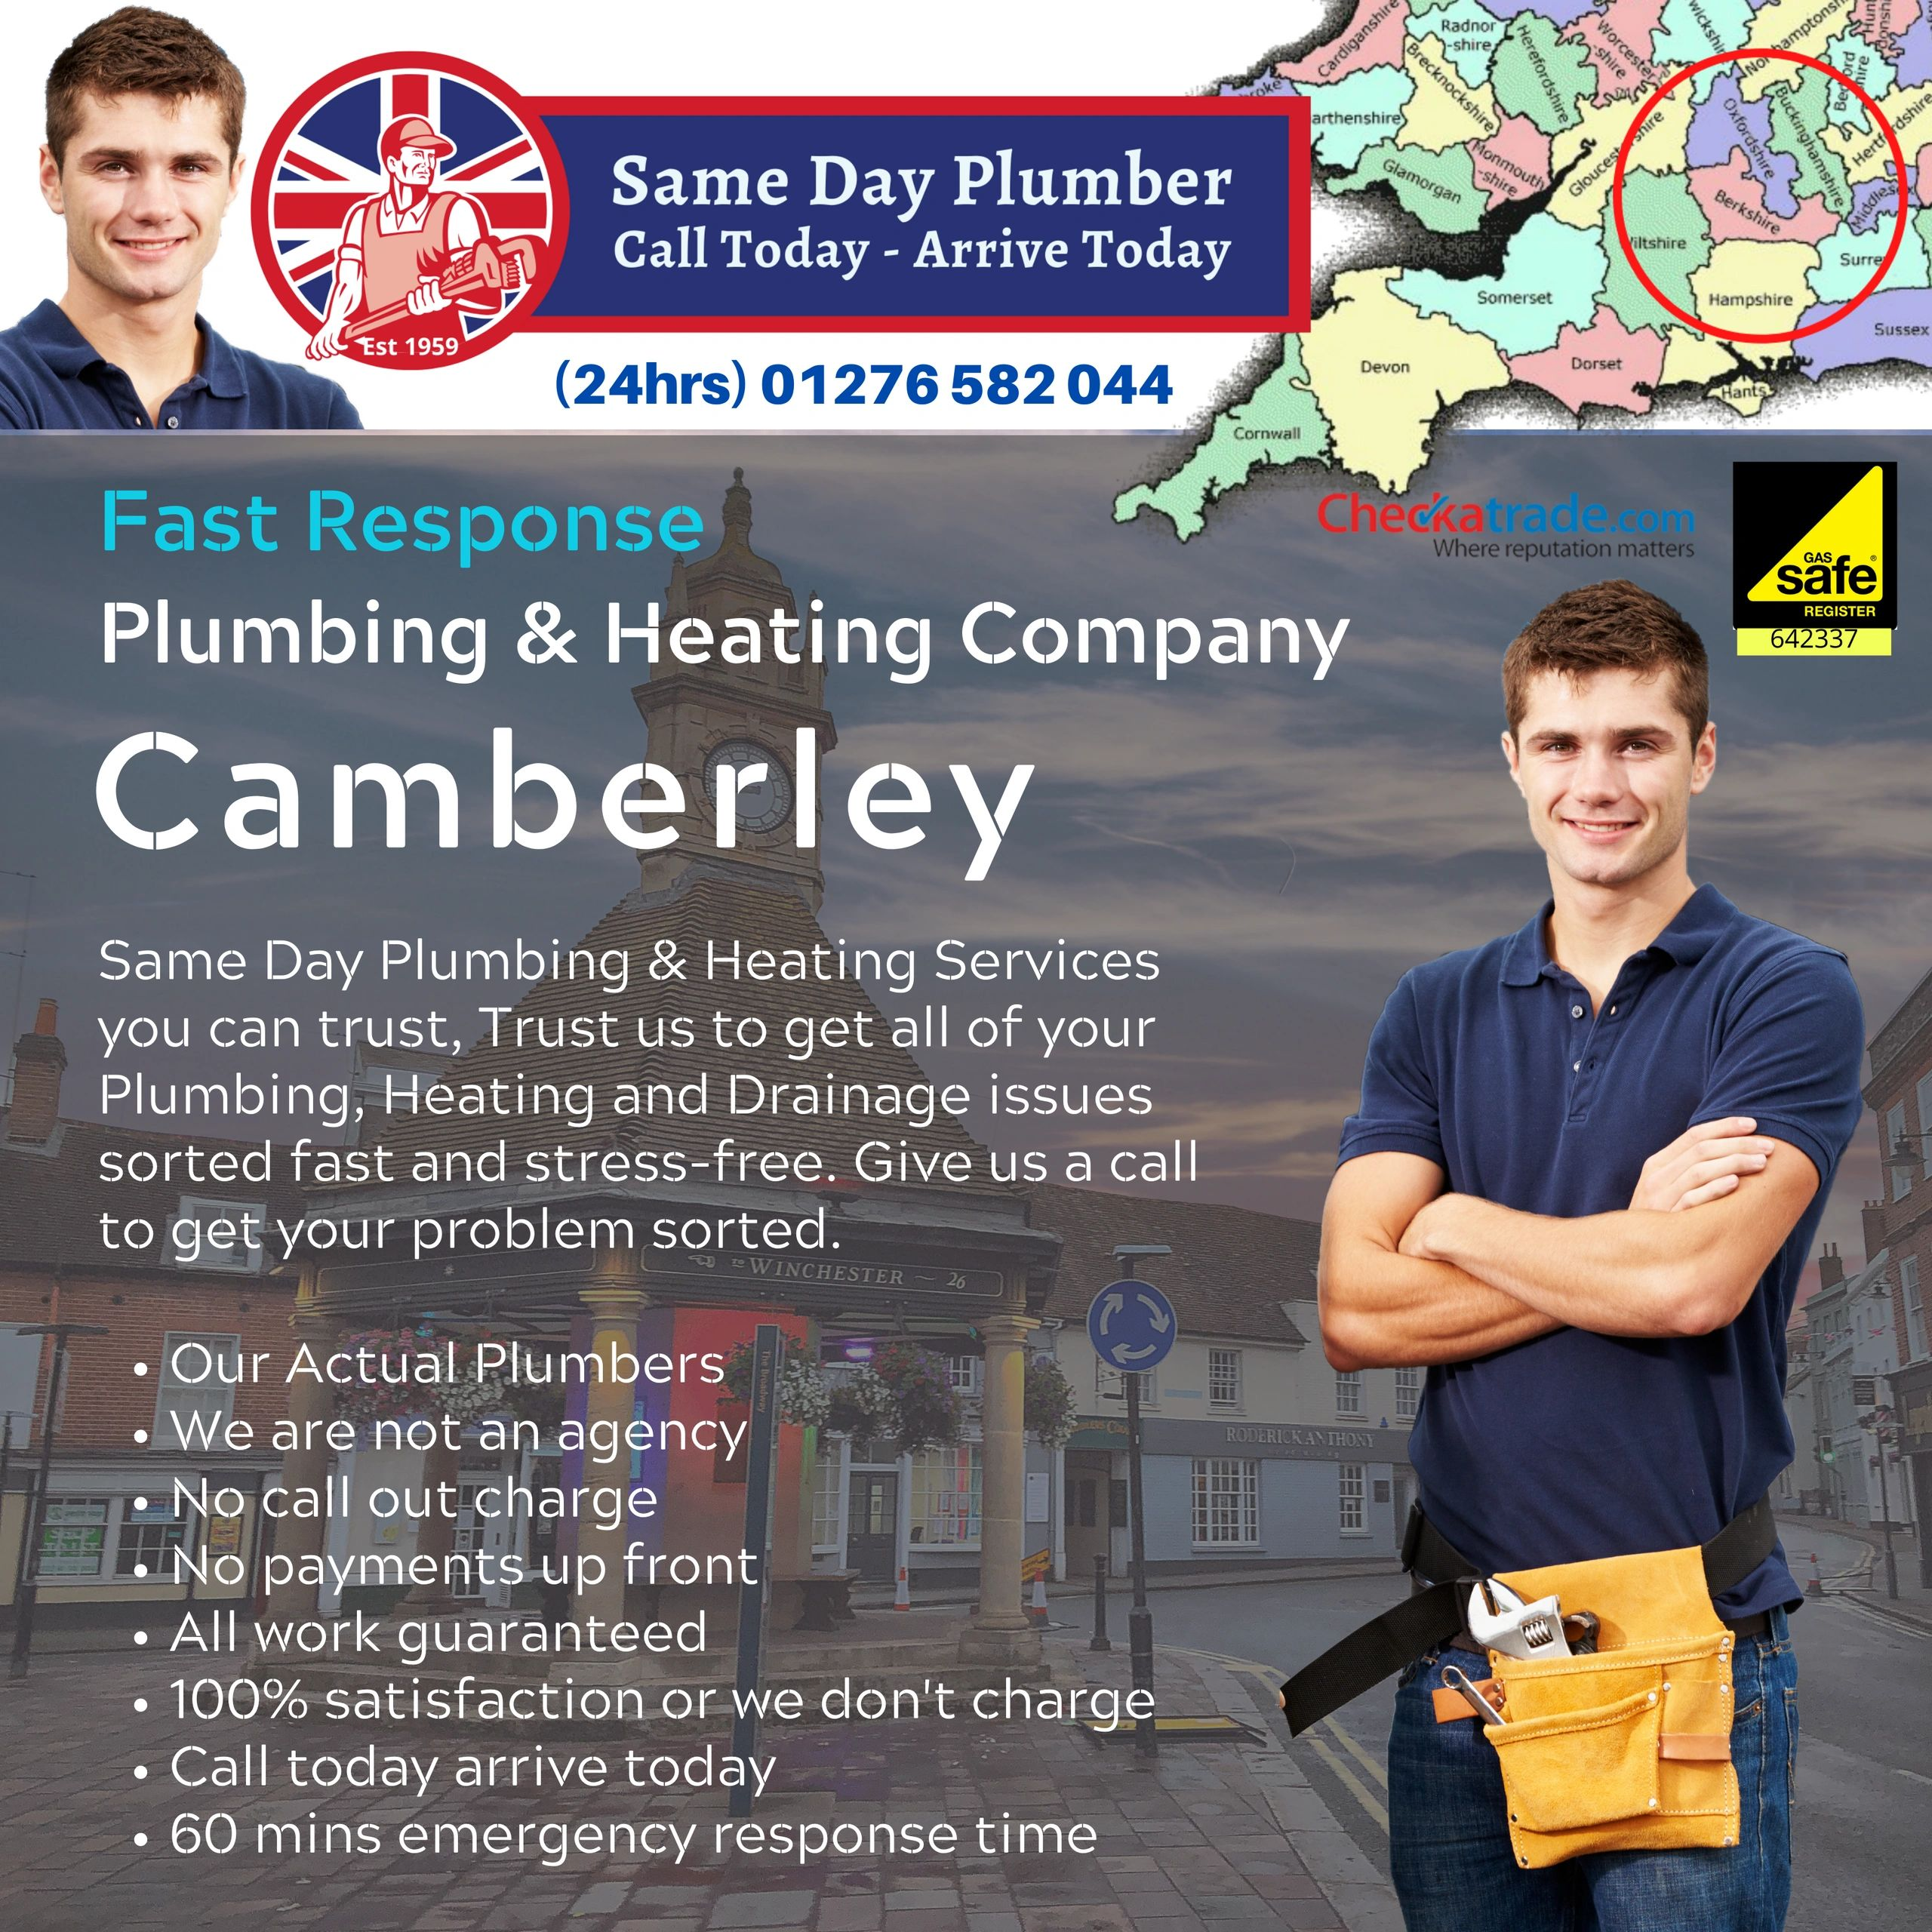 WELCOME TO SAME DAY PLUMBER IN CAMBERLEY